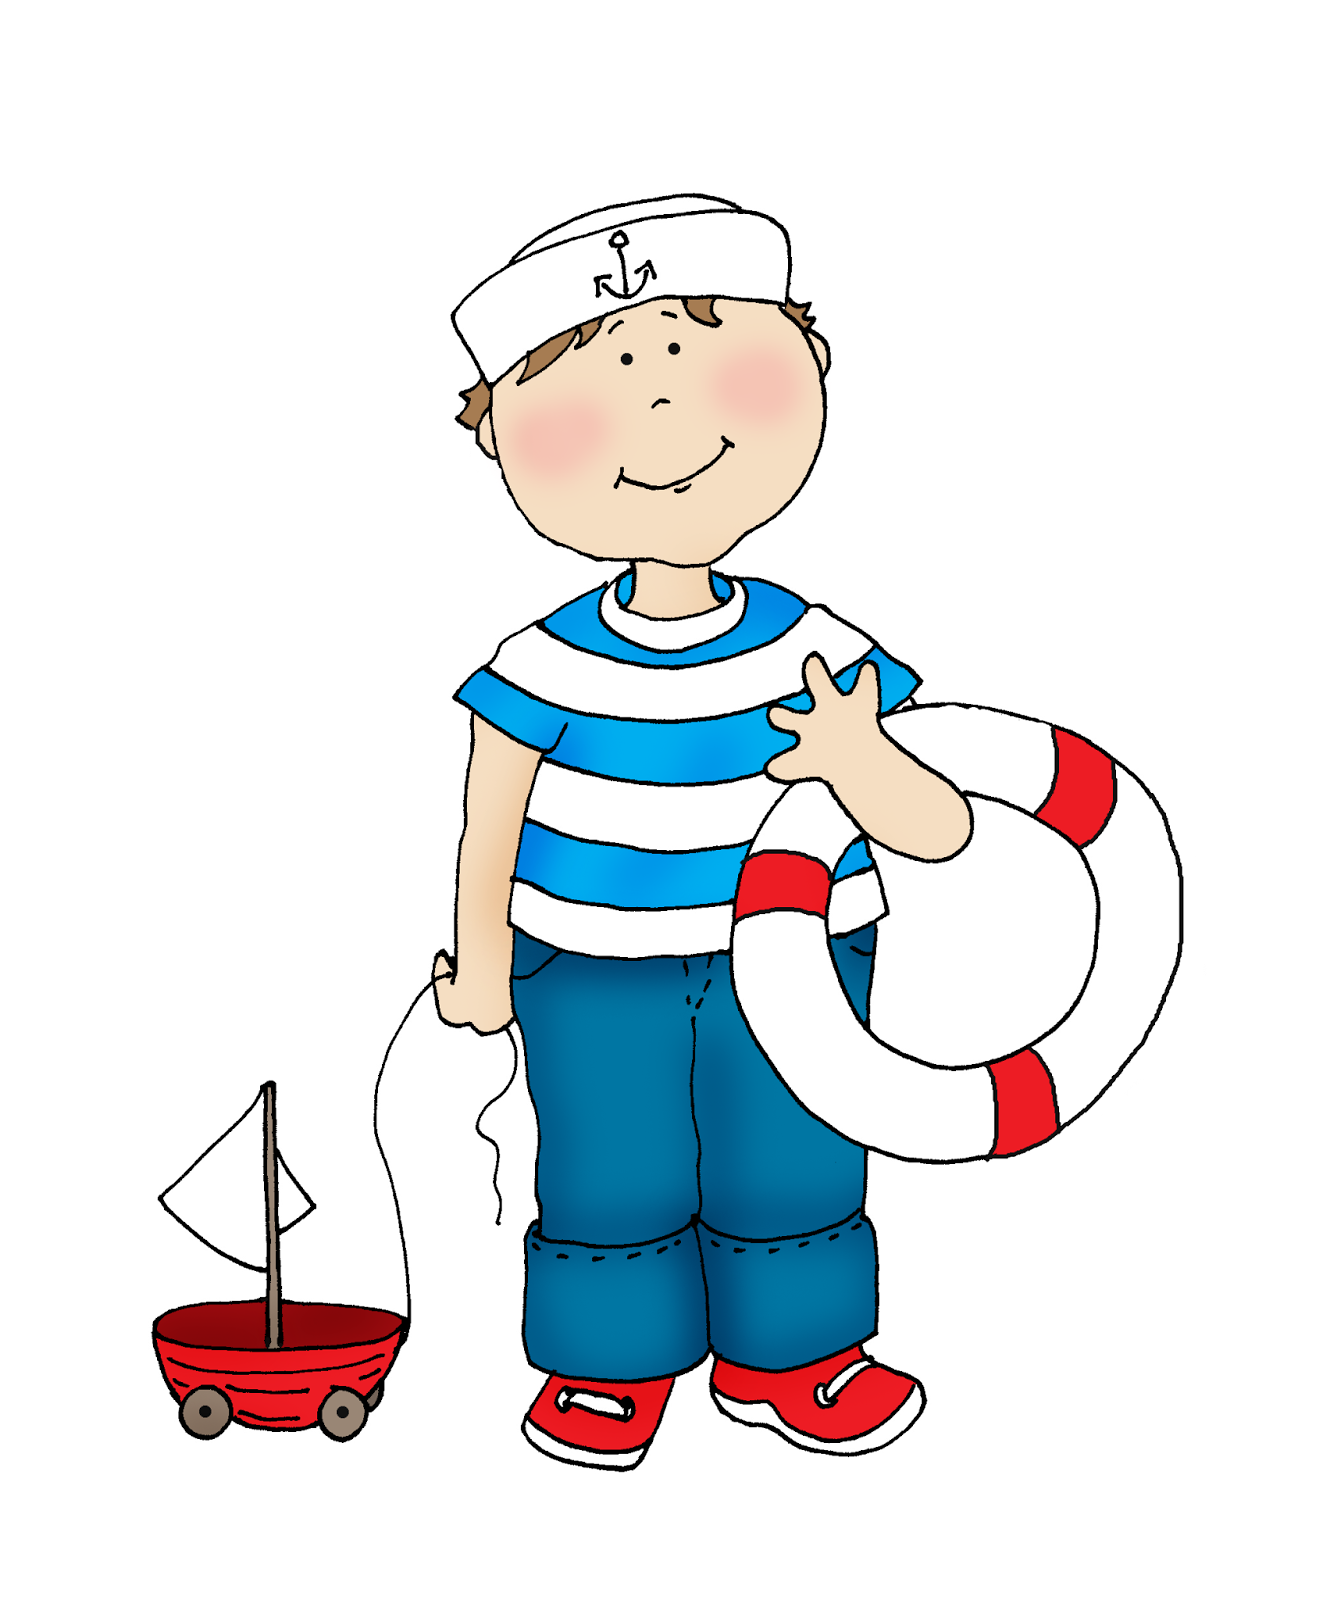 Sailor Boy (Free Dearie Dolls Digi Stamps).